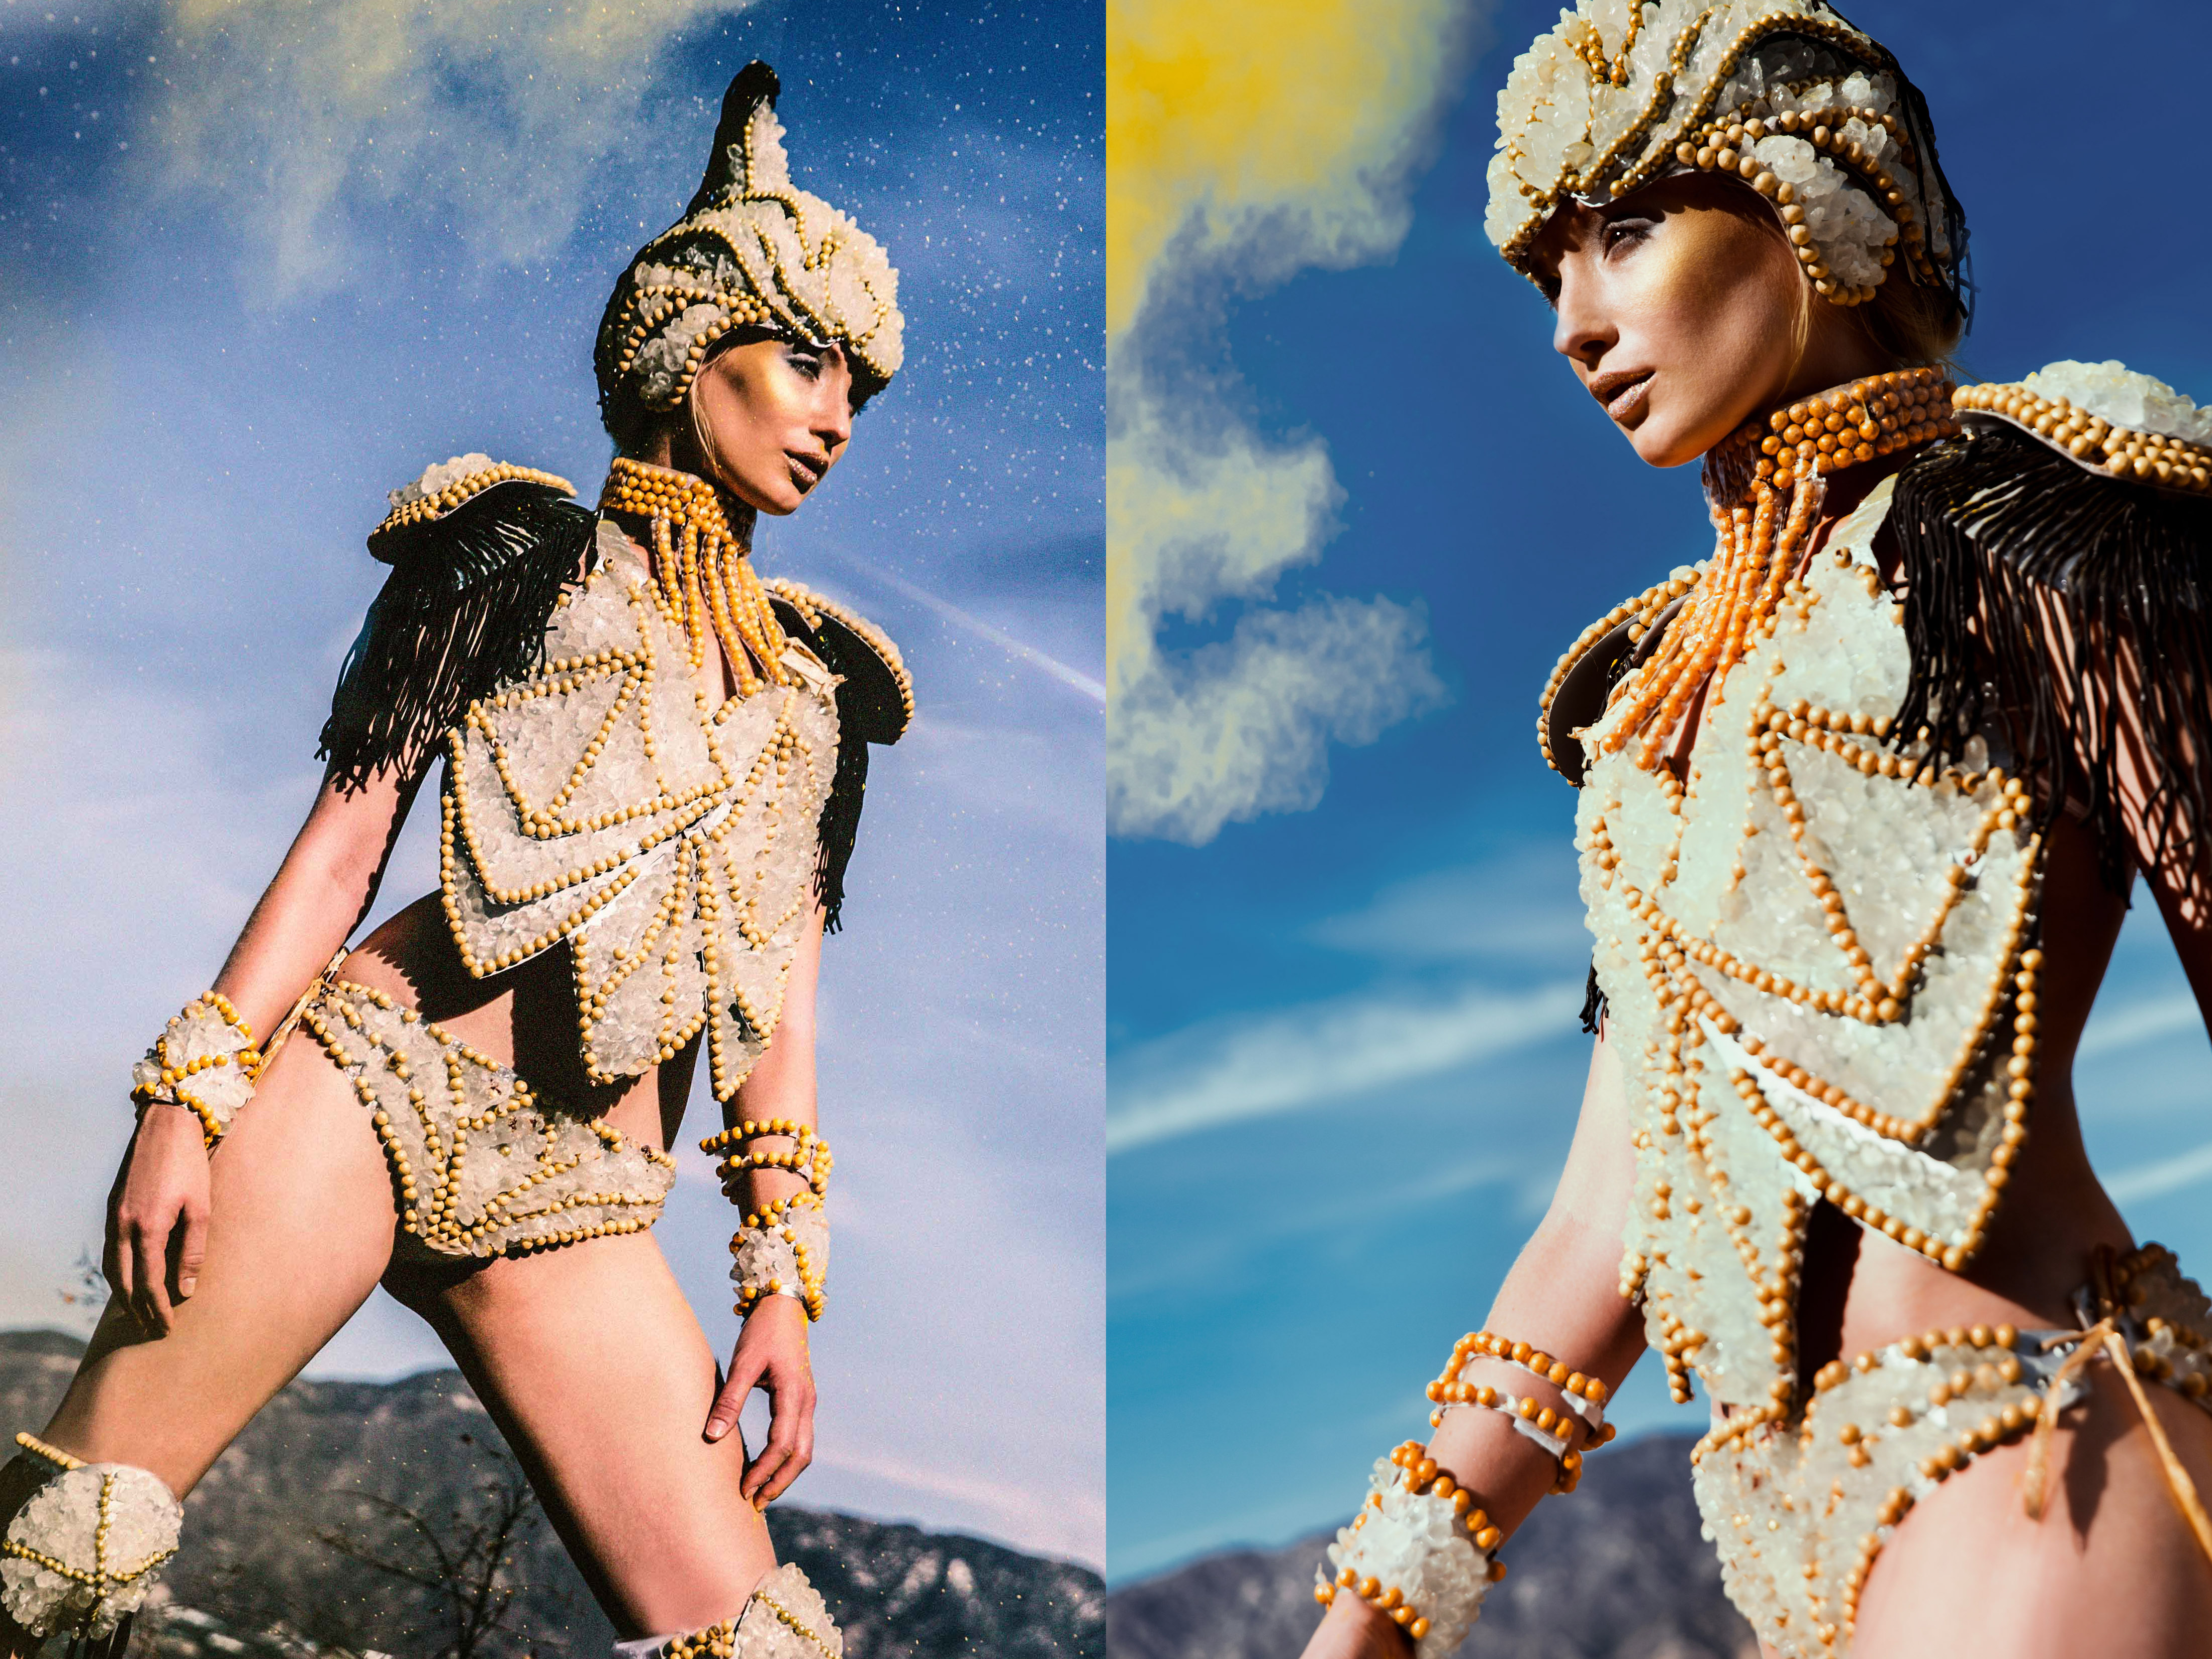 The costume is inspired by the Roman Soldiers clothing. The costume is made of rock candy and jelly beans glued on a paper.    Photography by Pavlina Popovska    Make up by: Toni Scott                    Vanessa Vasquez  Hair: Toni Scott  Designer: Lavini Tang  Model: Natalia Kucharina